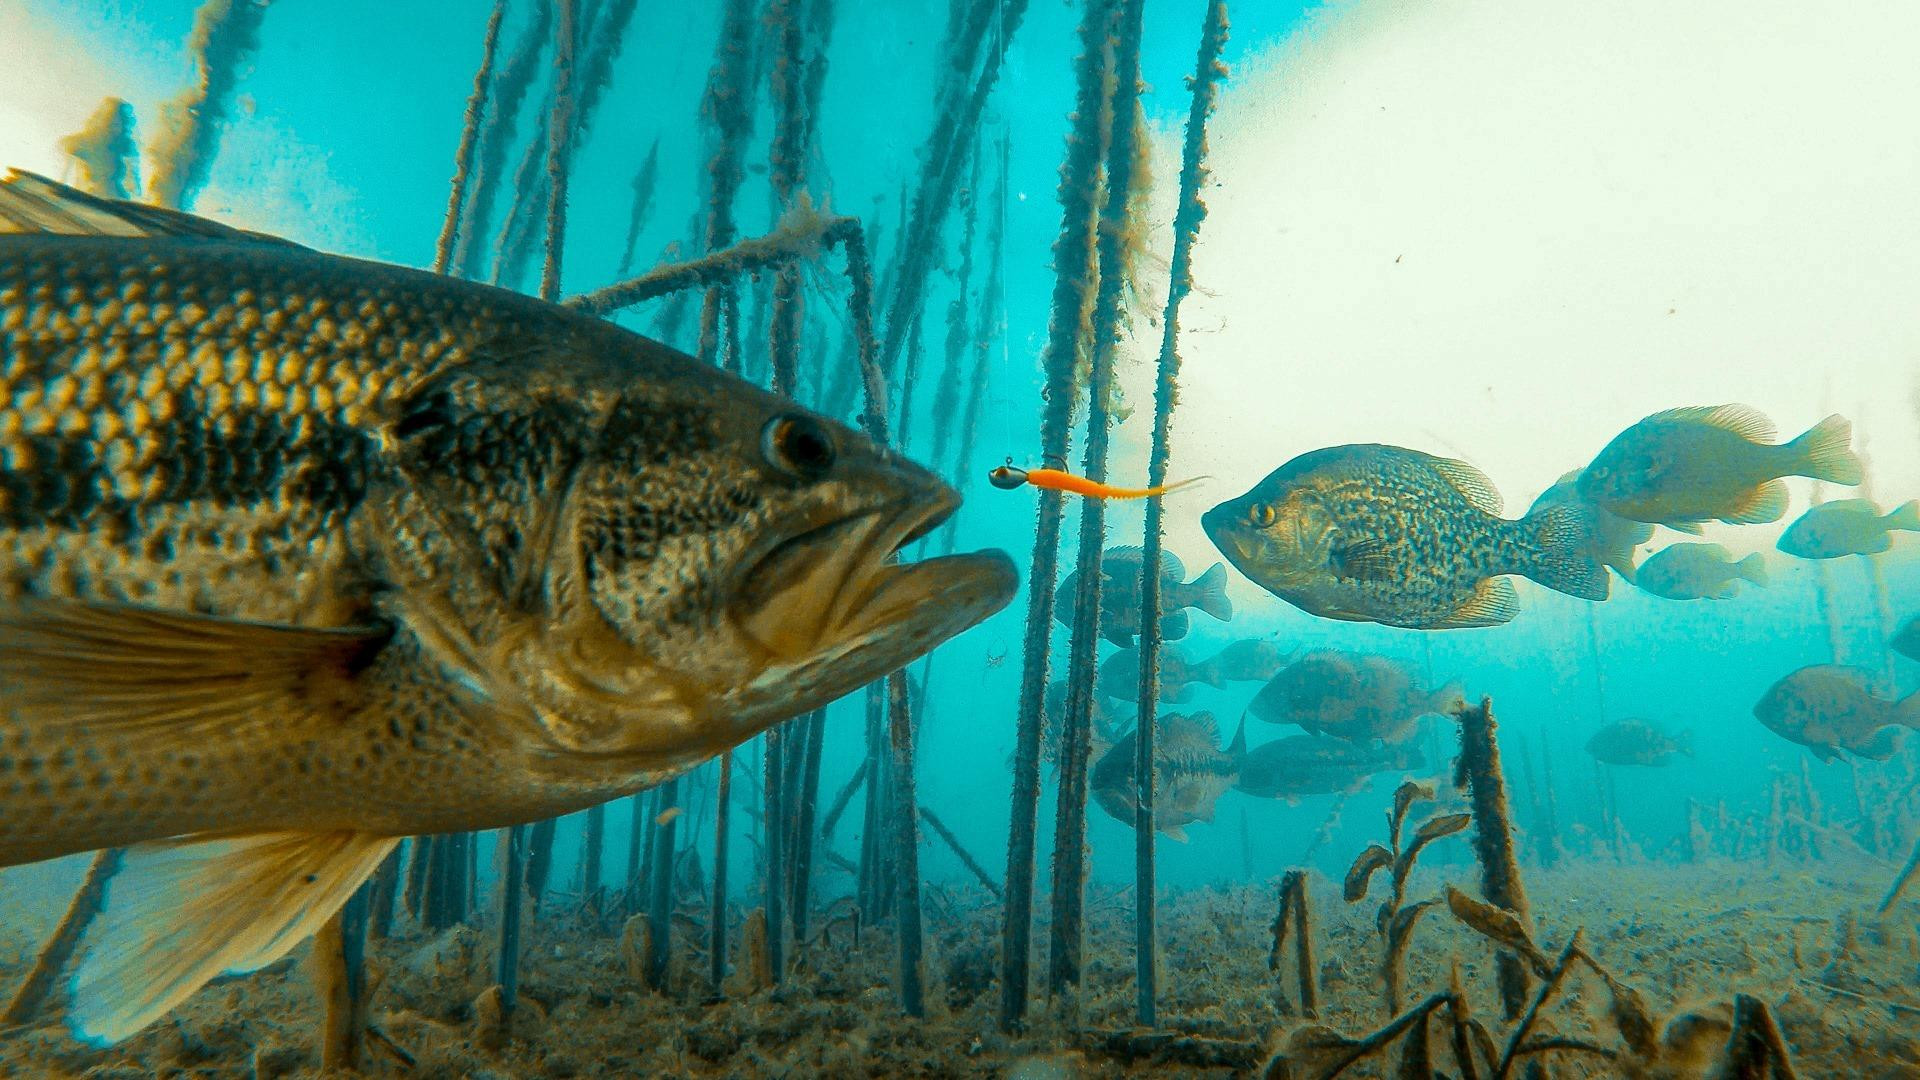 Incredible Underwater Video of Bass and Panfish